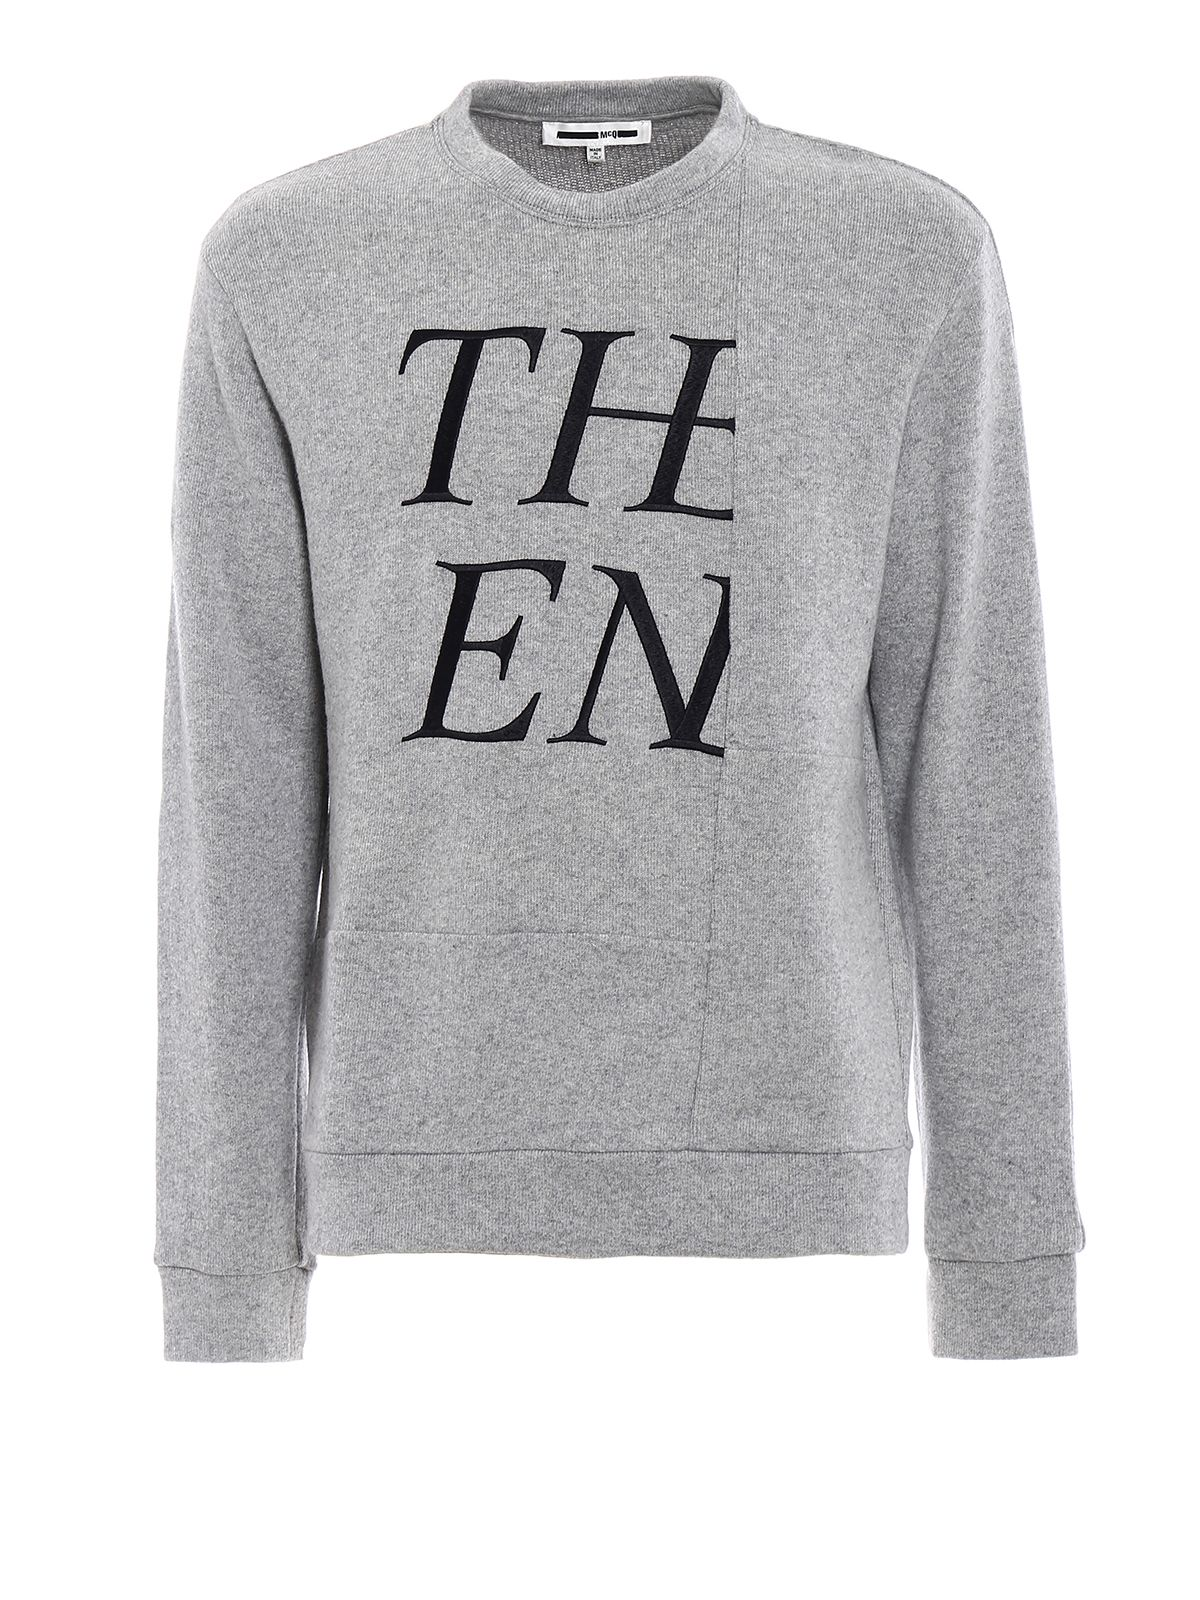 The End Embroidery Sweatshirt